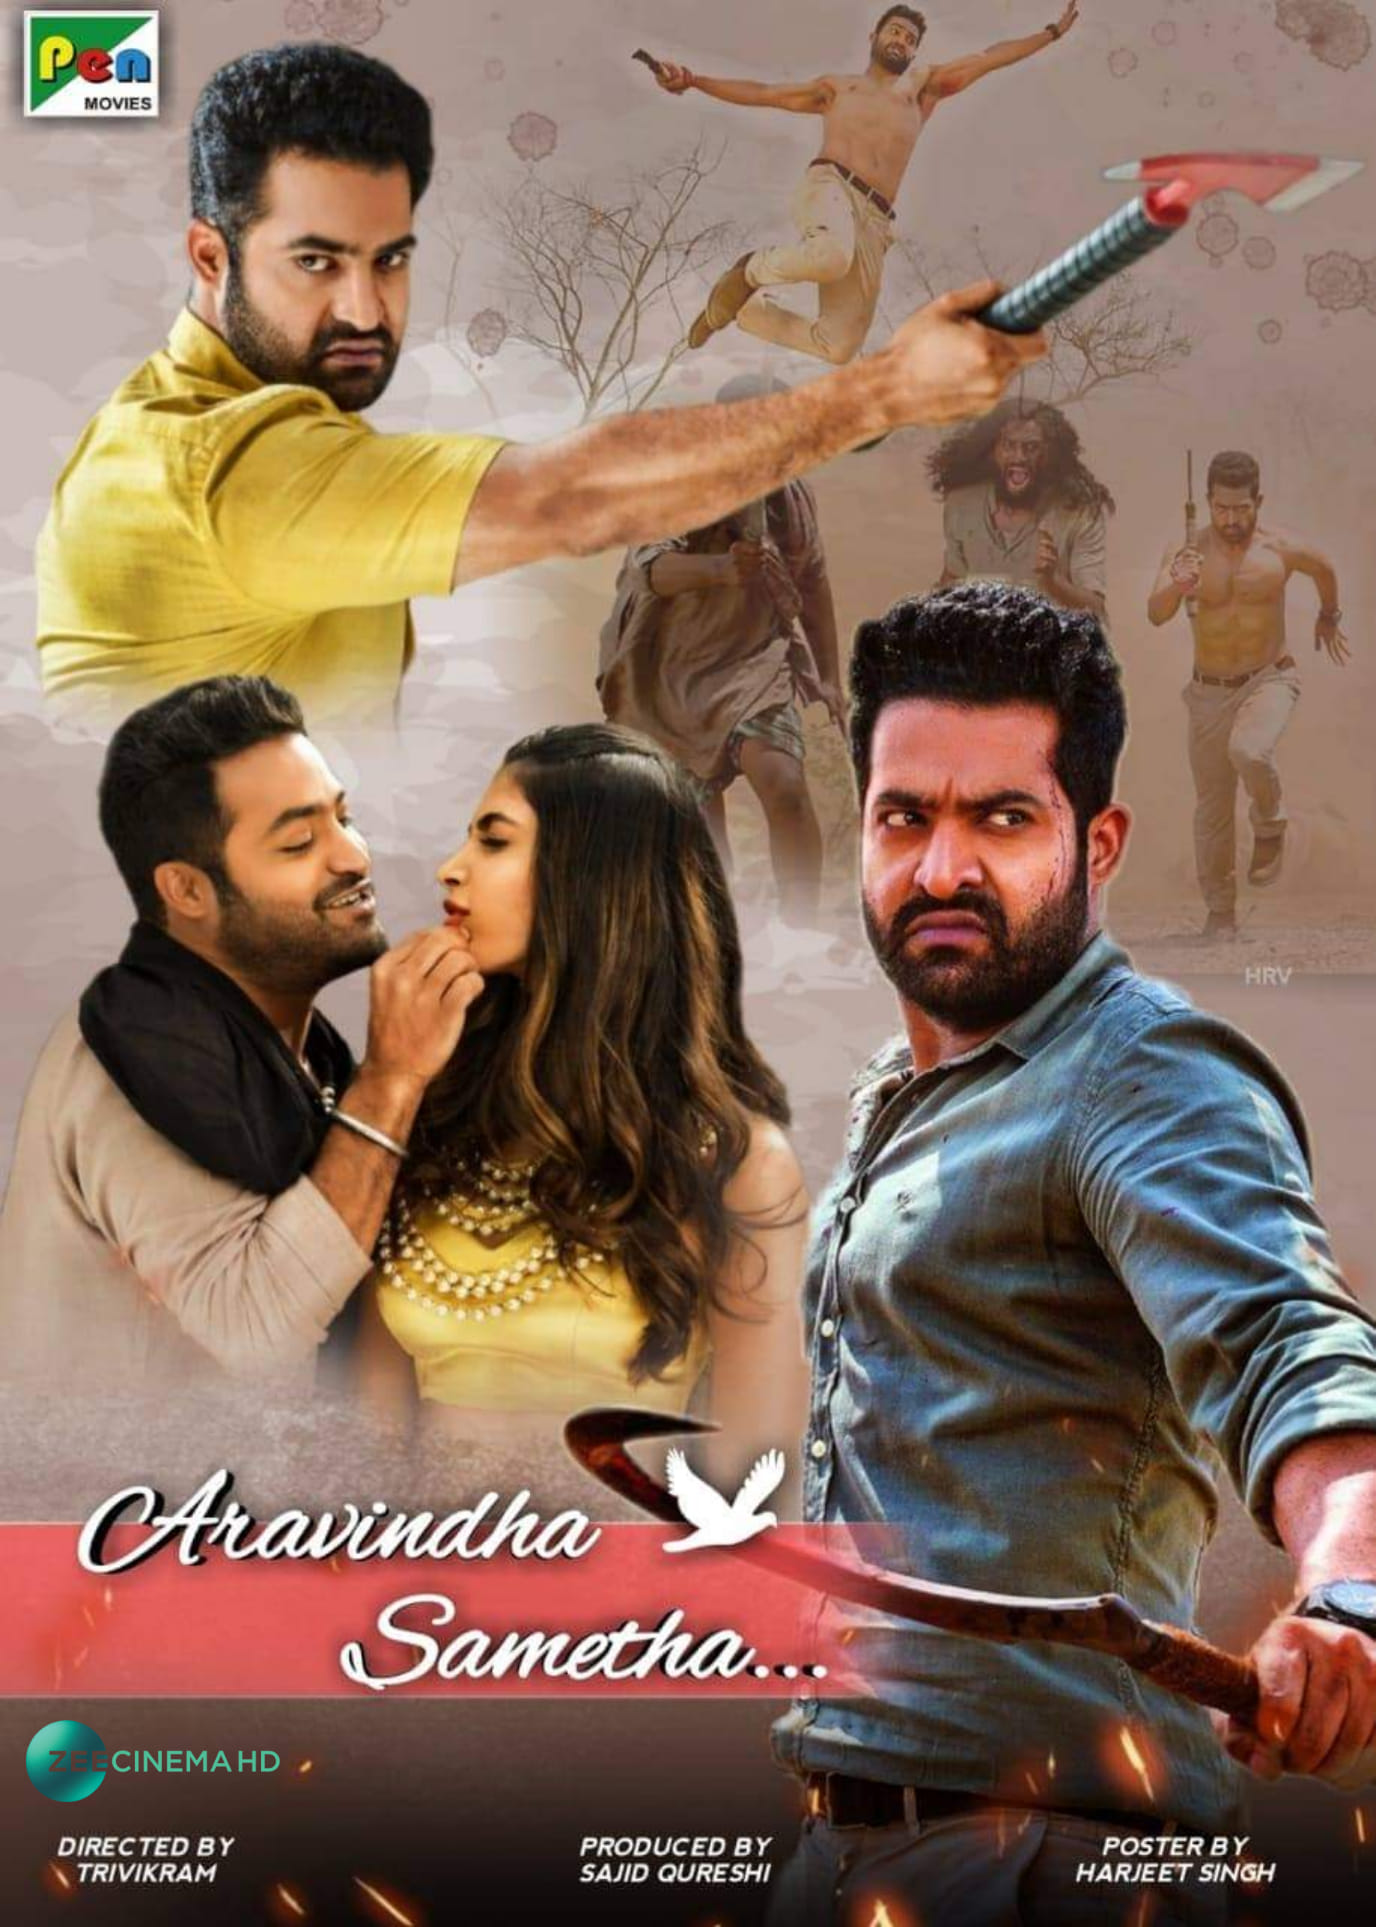 Aravinda Sametha Veera Raghava (2020) Hindi Dubbed 720p HDRip 800MB Download